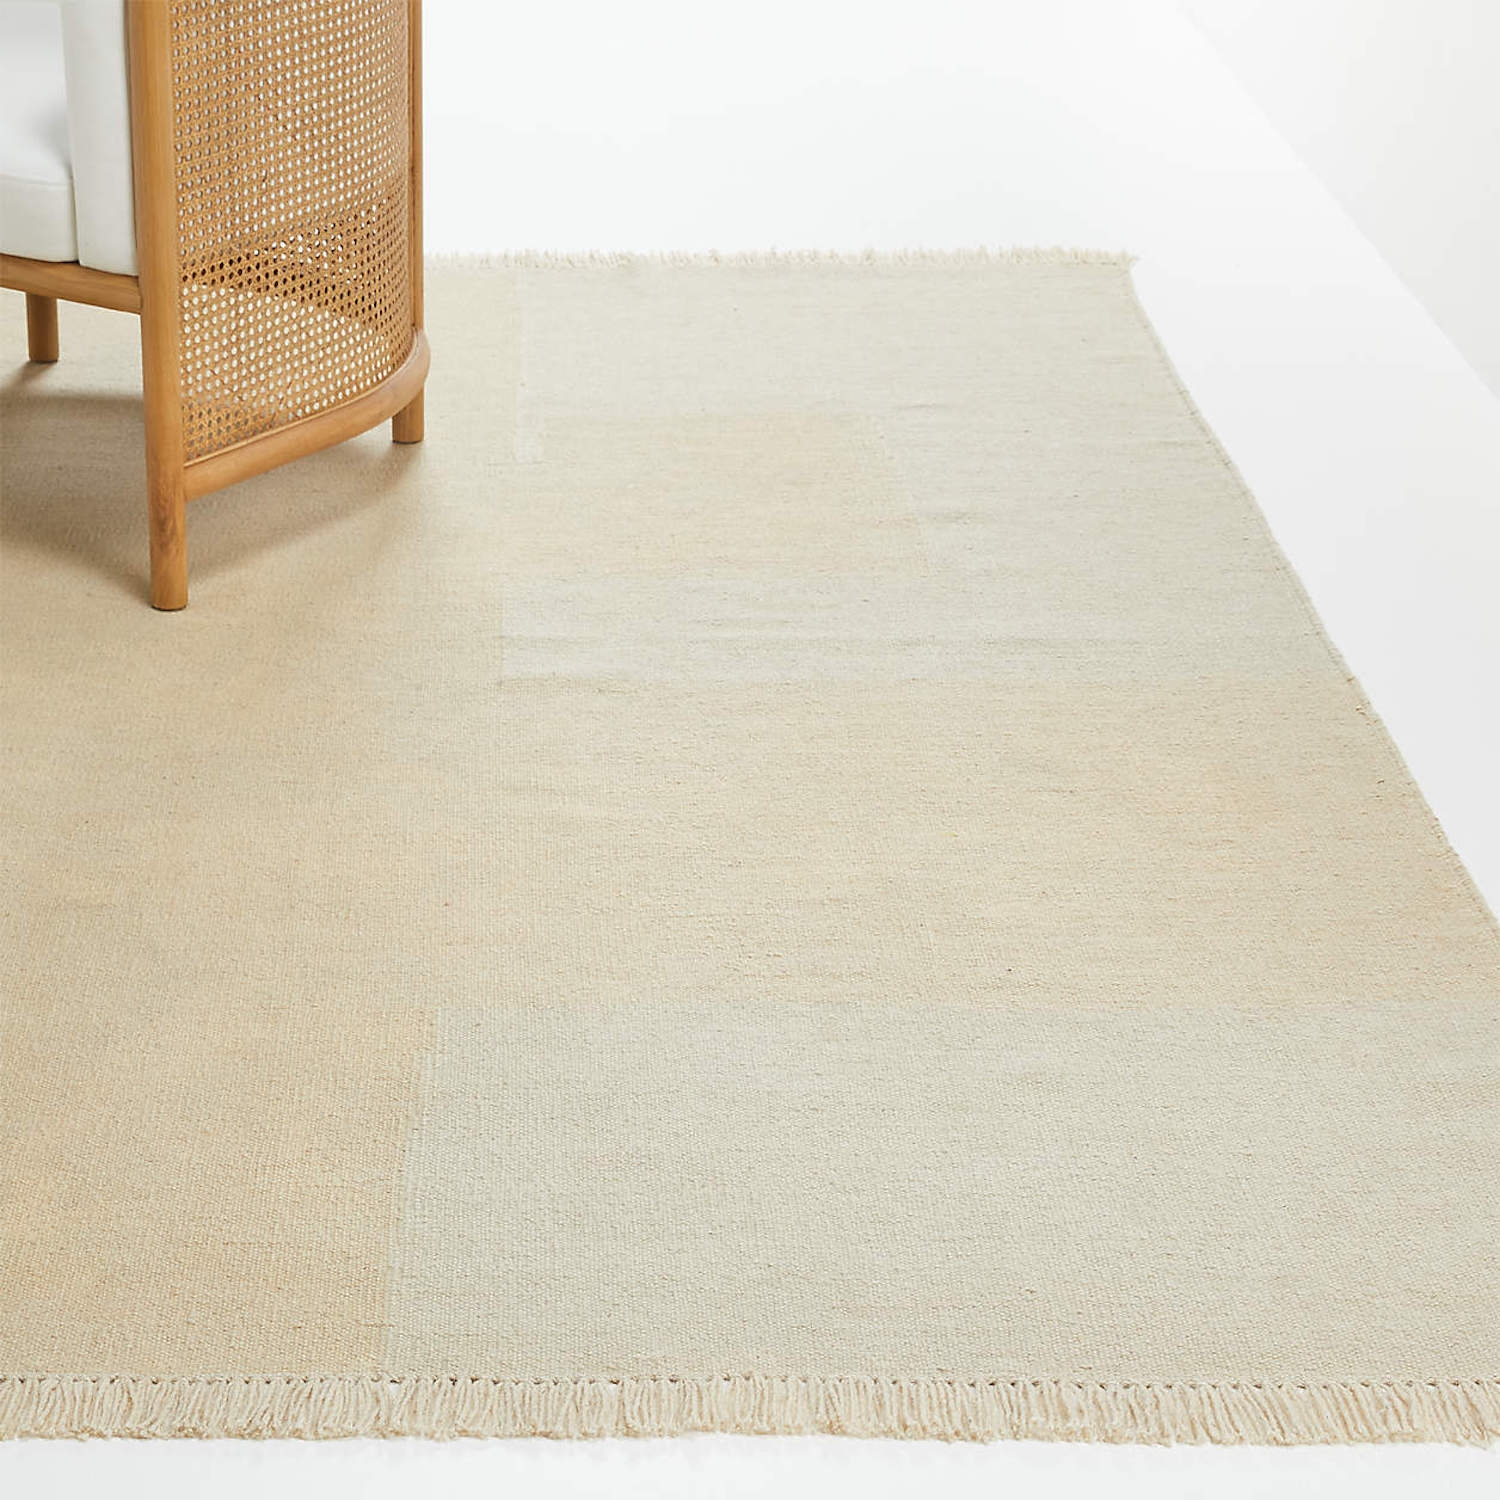 crate & barrel&#8\2\17;s ghost ranch flatweave rug ranges from \$599 to 14